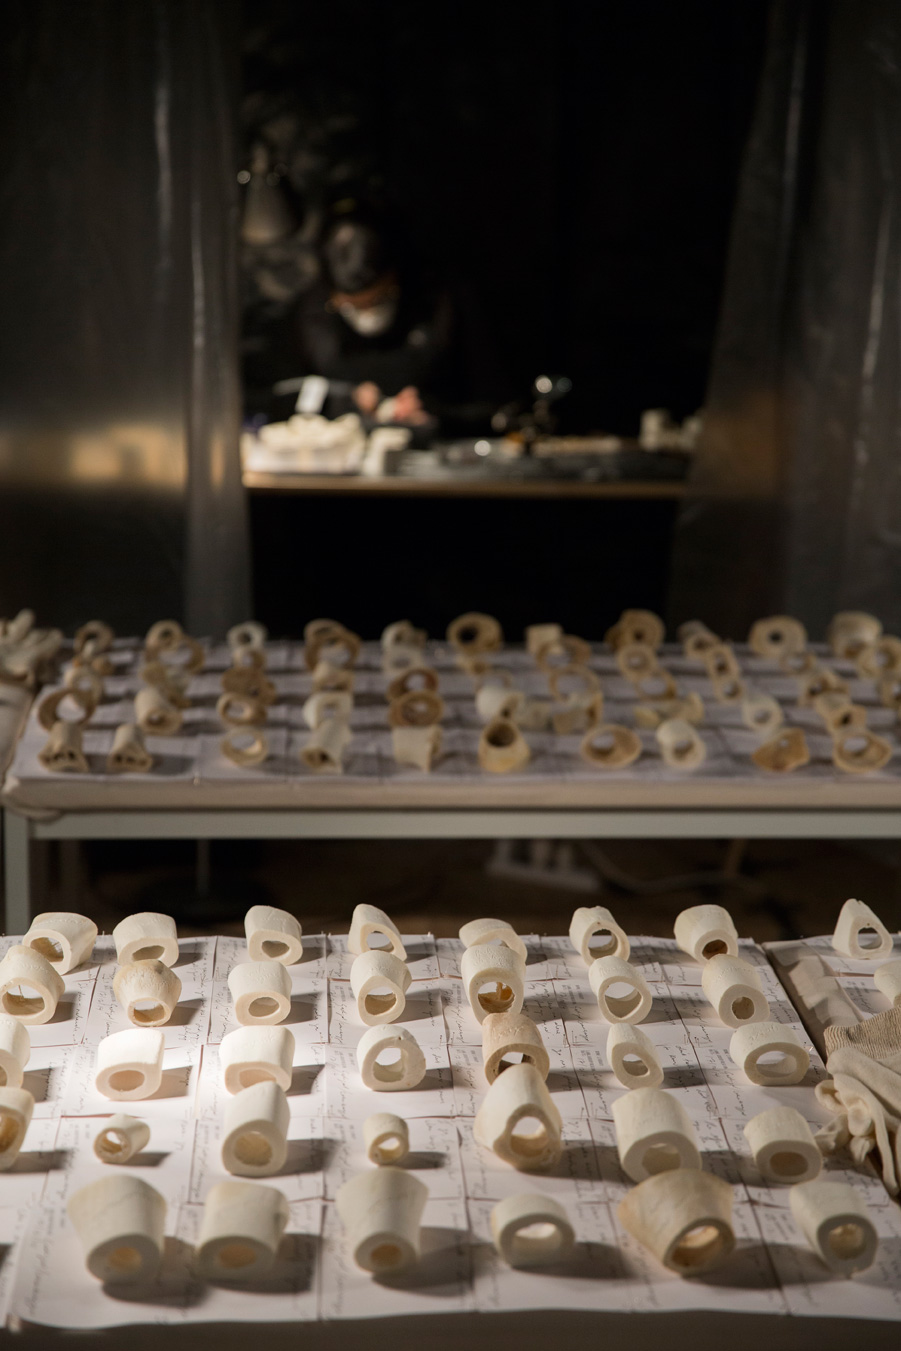 Sarah-Jane Norman, Bone Library. Venice International Performance Art Week (2014). Photograph by Monika Sobczak.